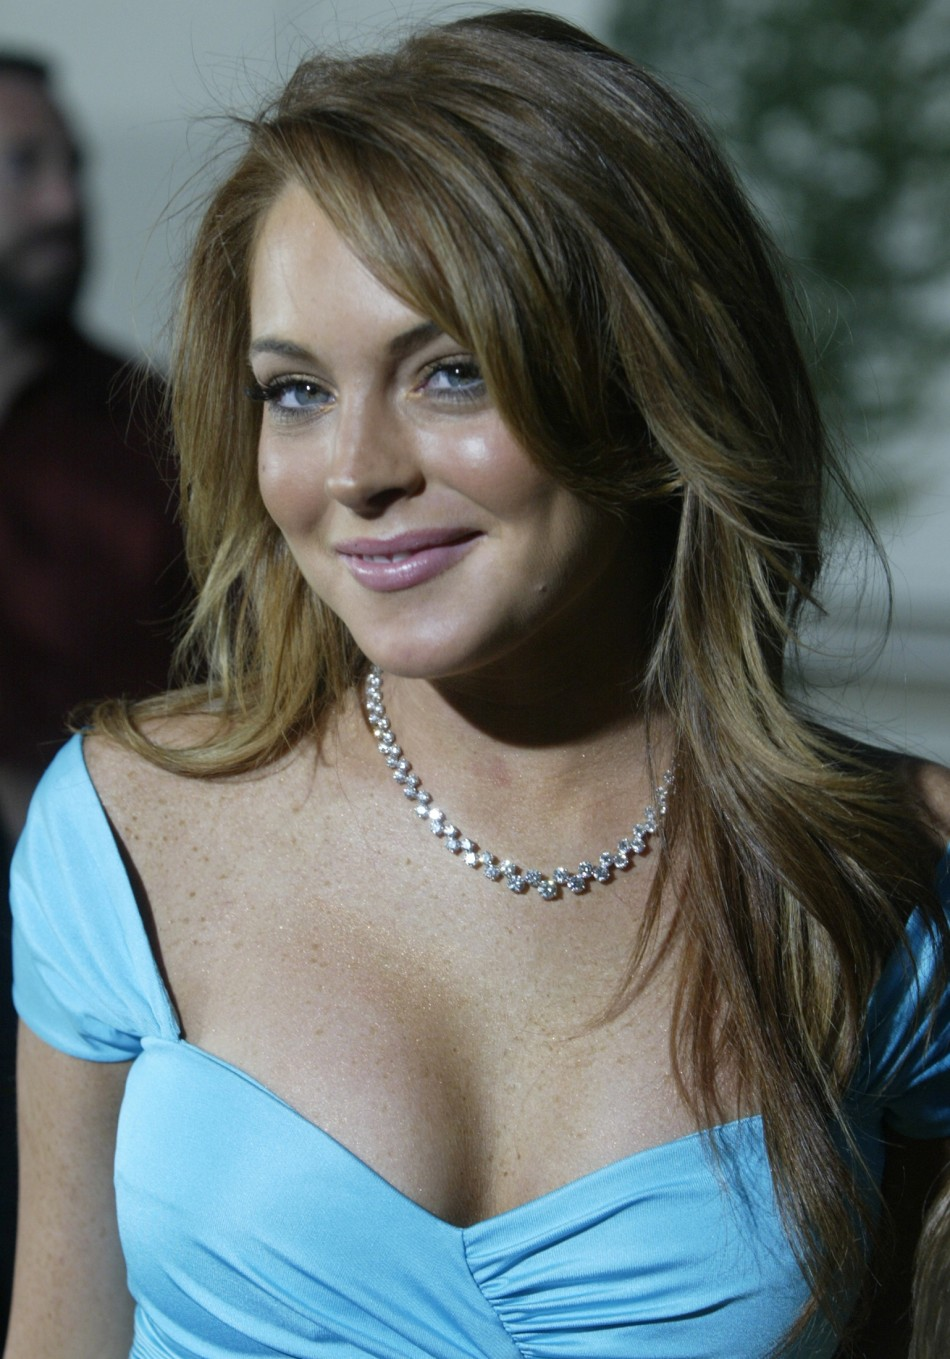 """Lindsay Lohan in 2004 - The """"Mean Girl"""" With a Fan Following"""